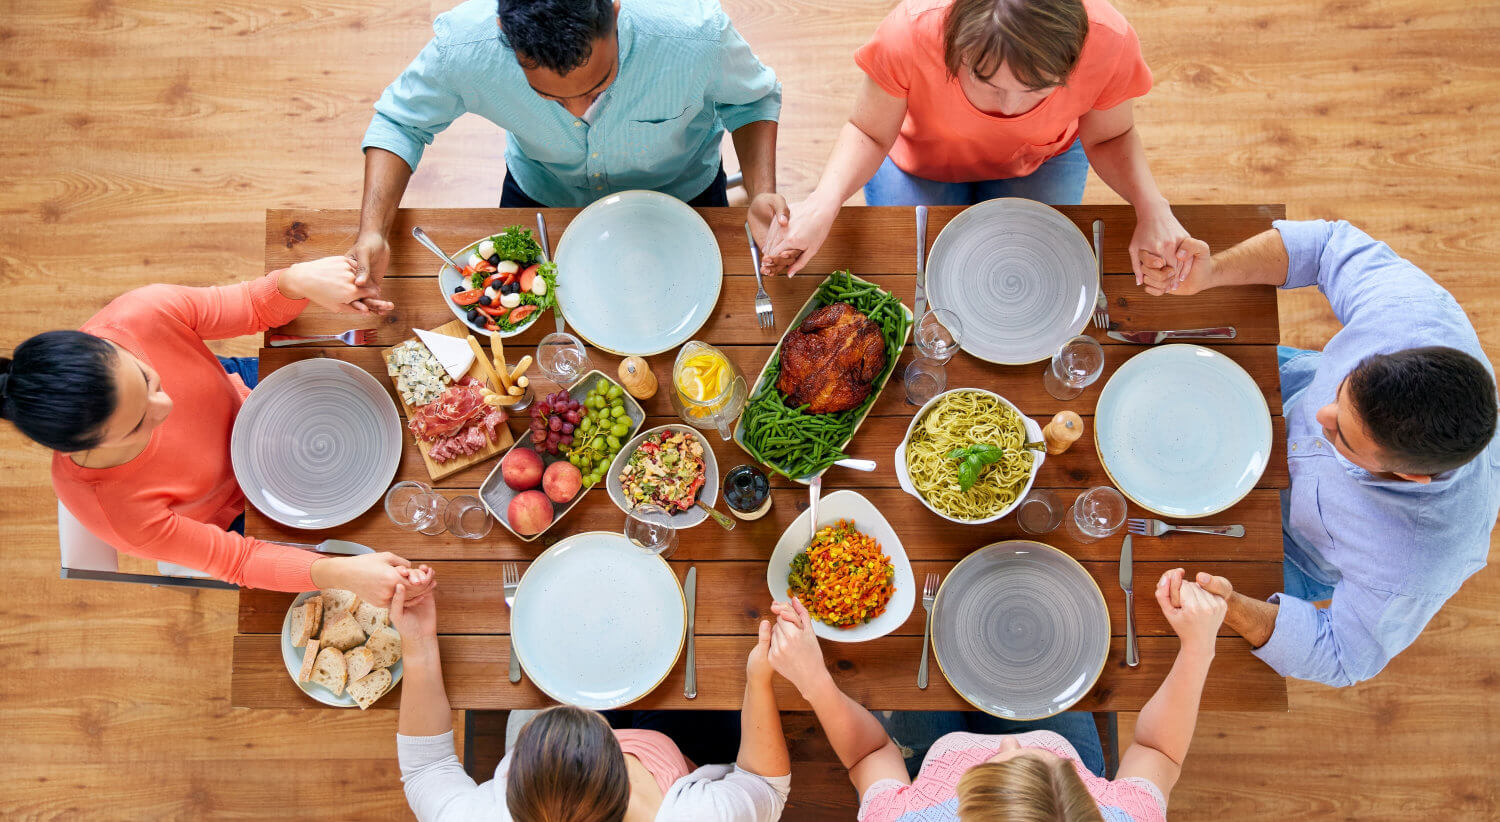 At the Thanksgiving Table, Licensed through Stock Photo Secrets